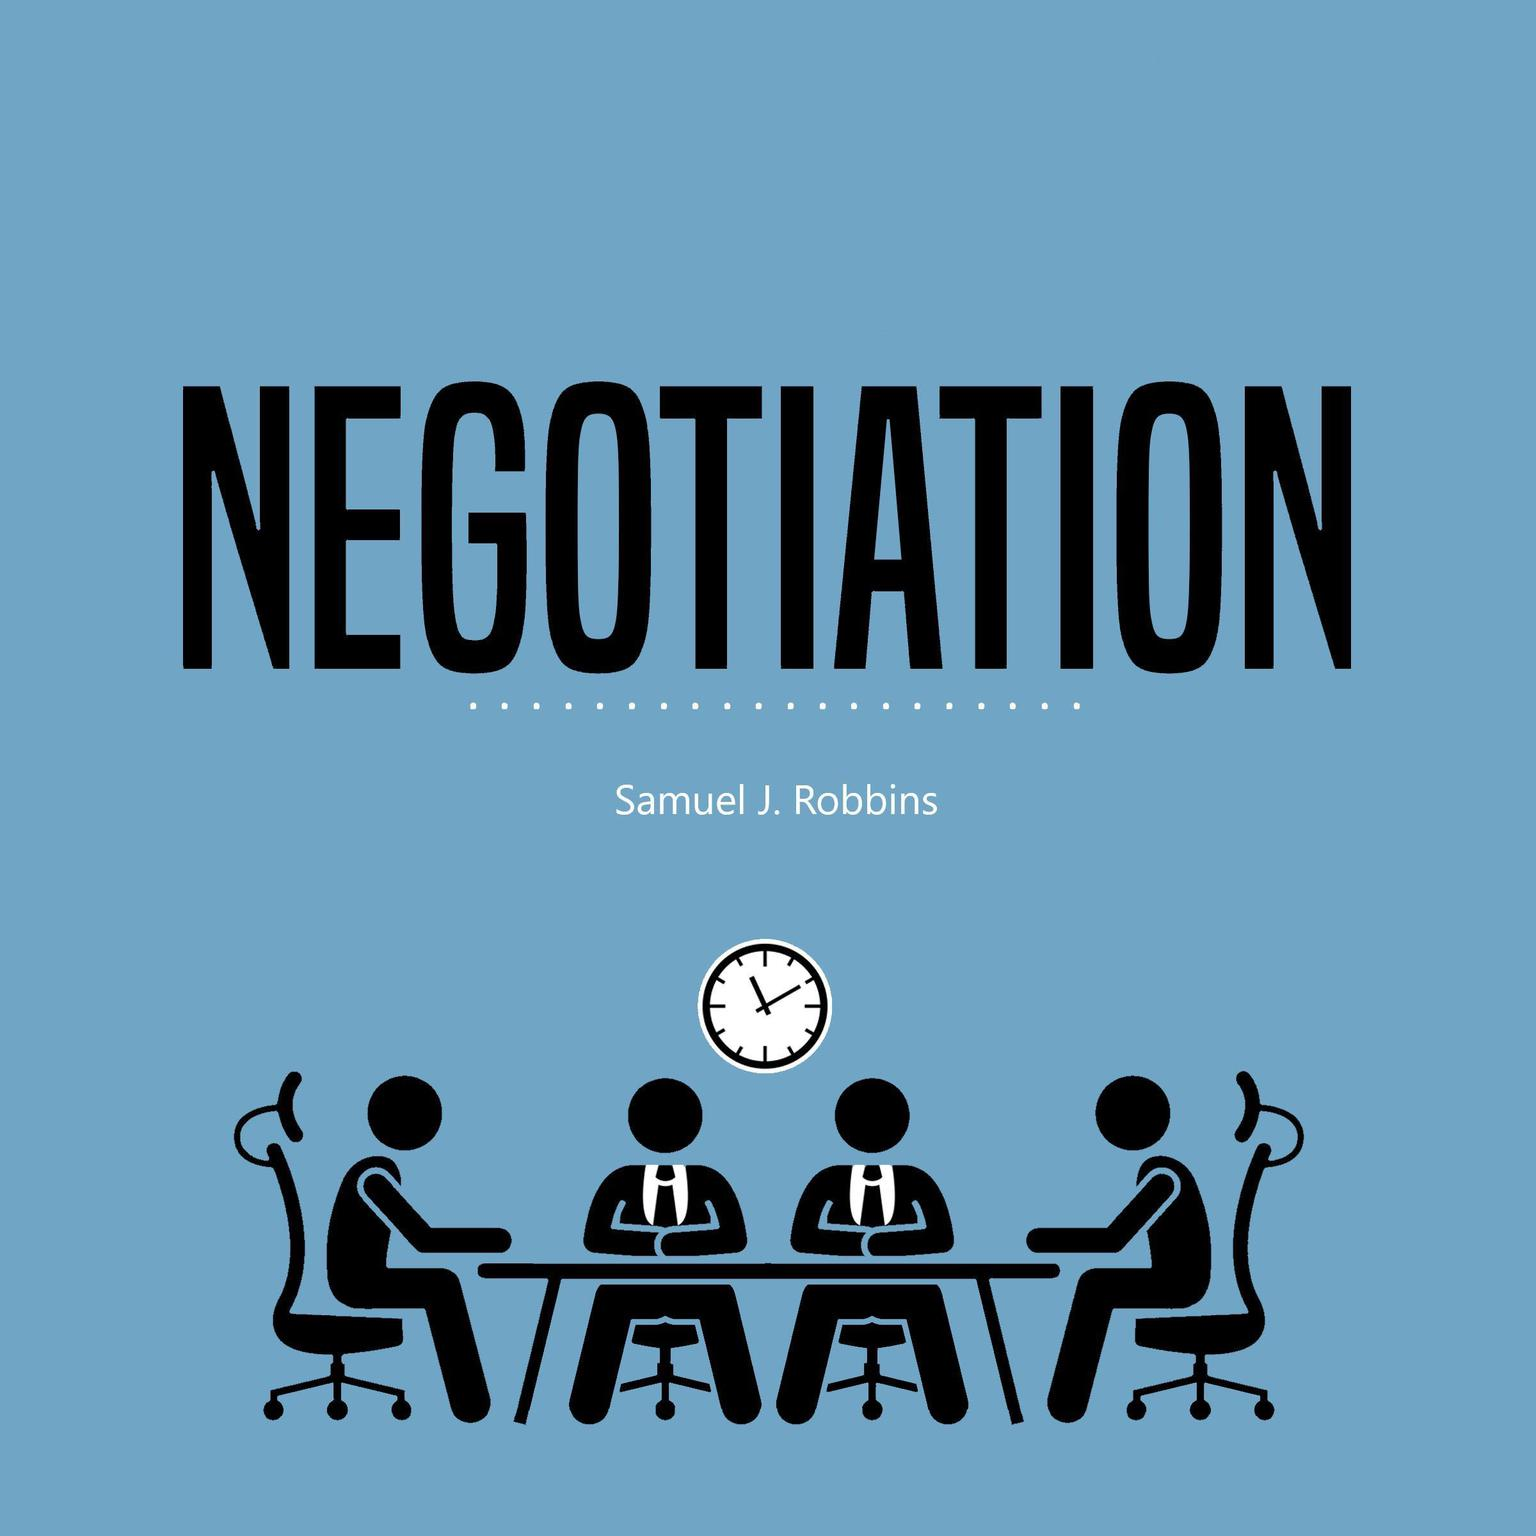 Negotiation: A Beginner's Guide to Influence, Analyze People Using Persuasion and Powerful Communication Skills Audiobook, by Samuel J. Robbins